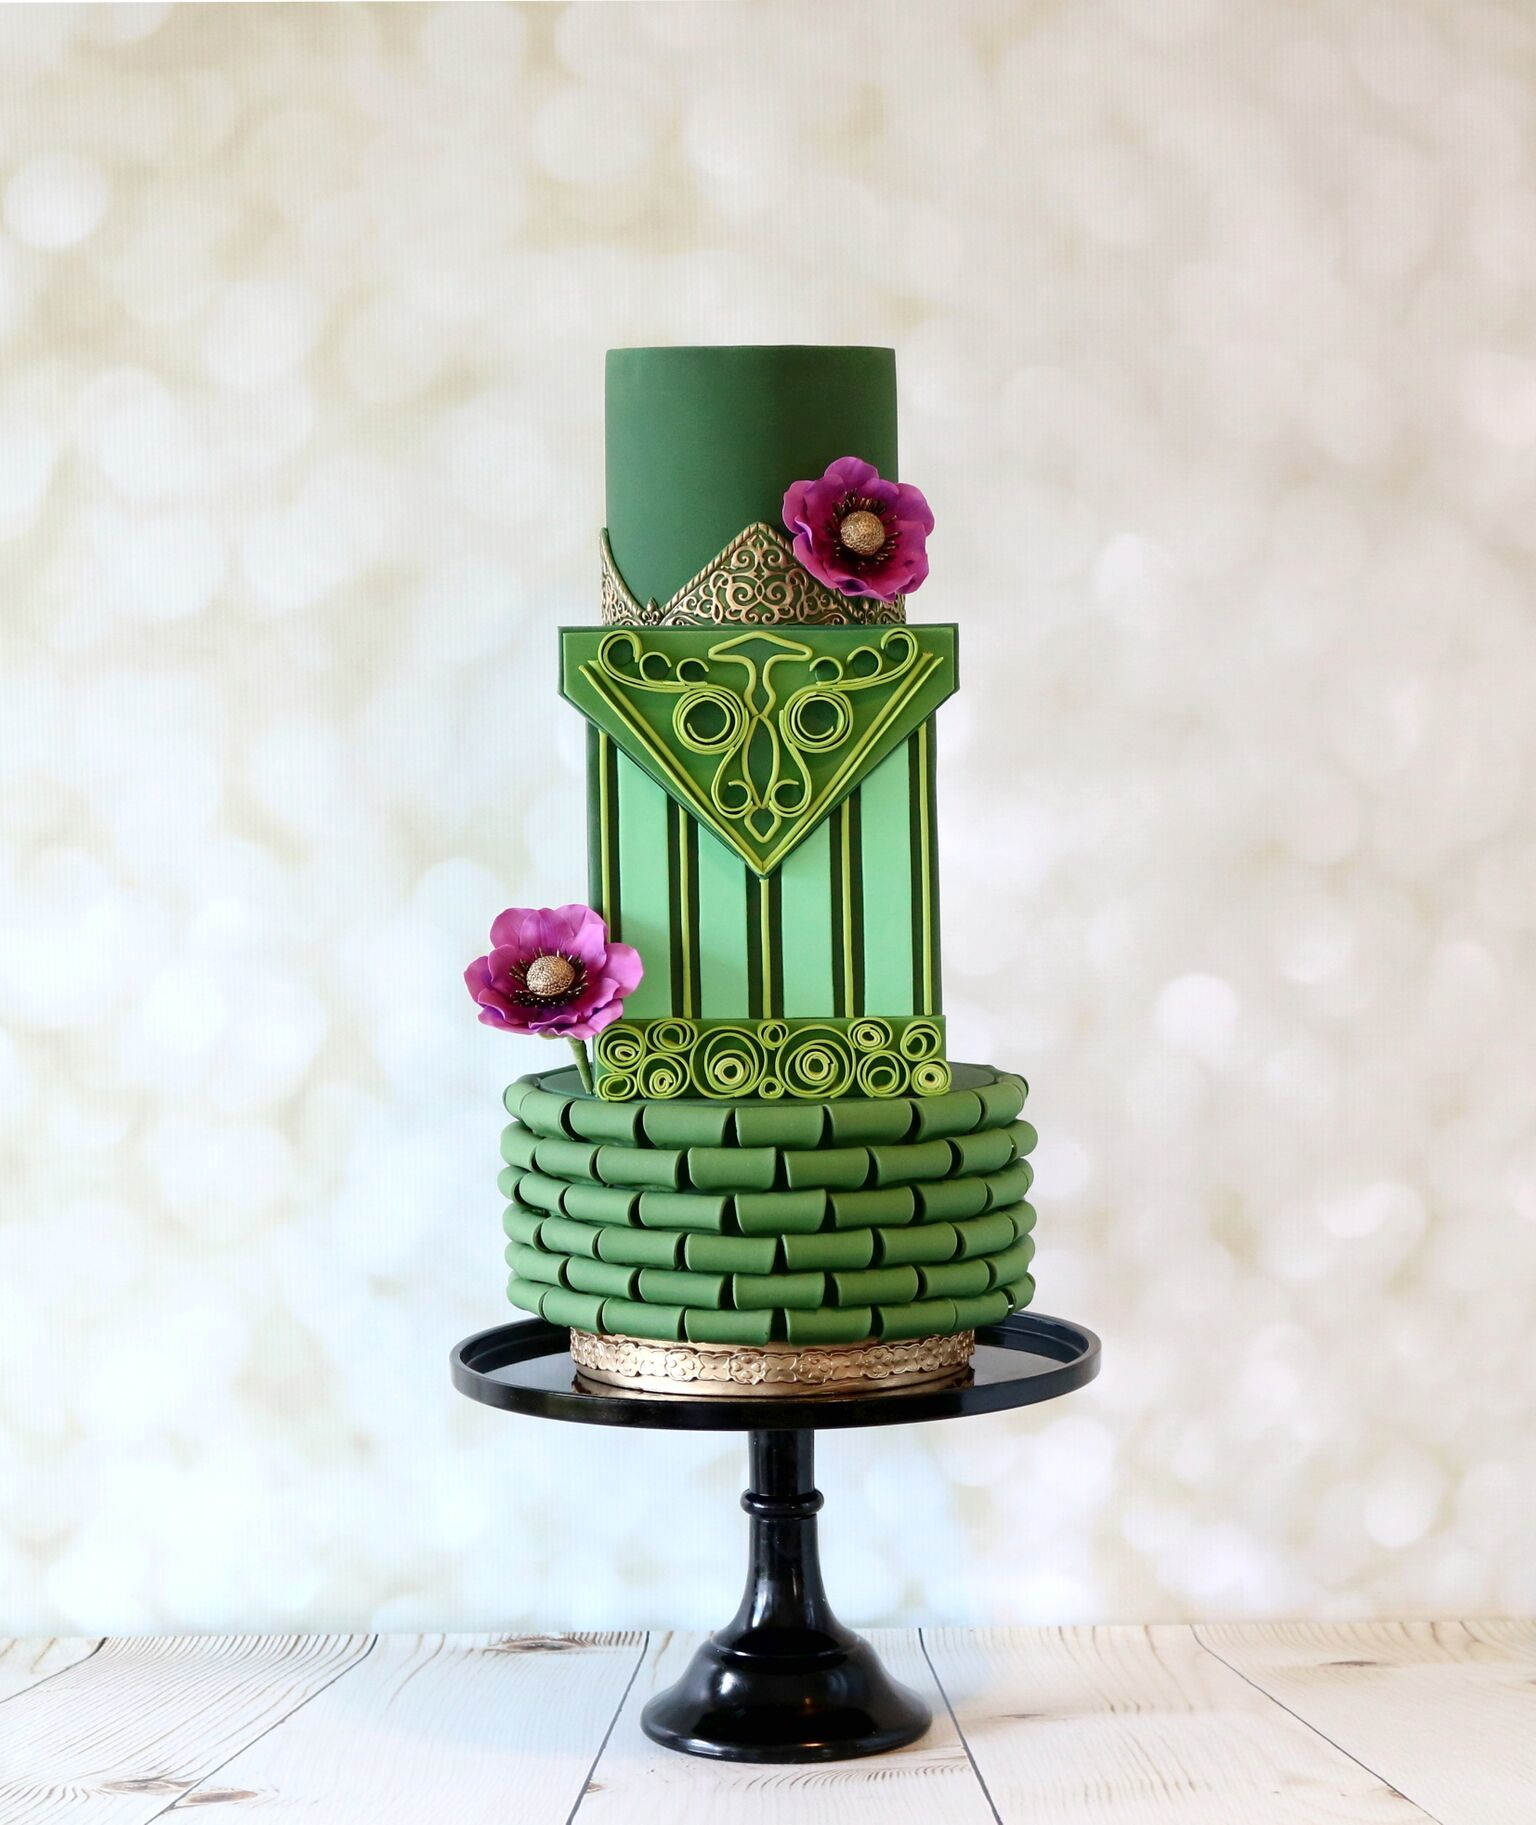 Green on green Wedding cake